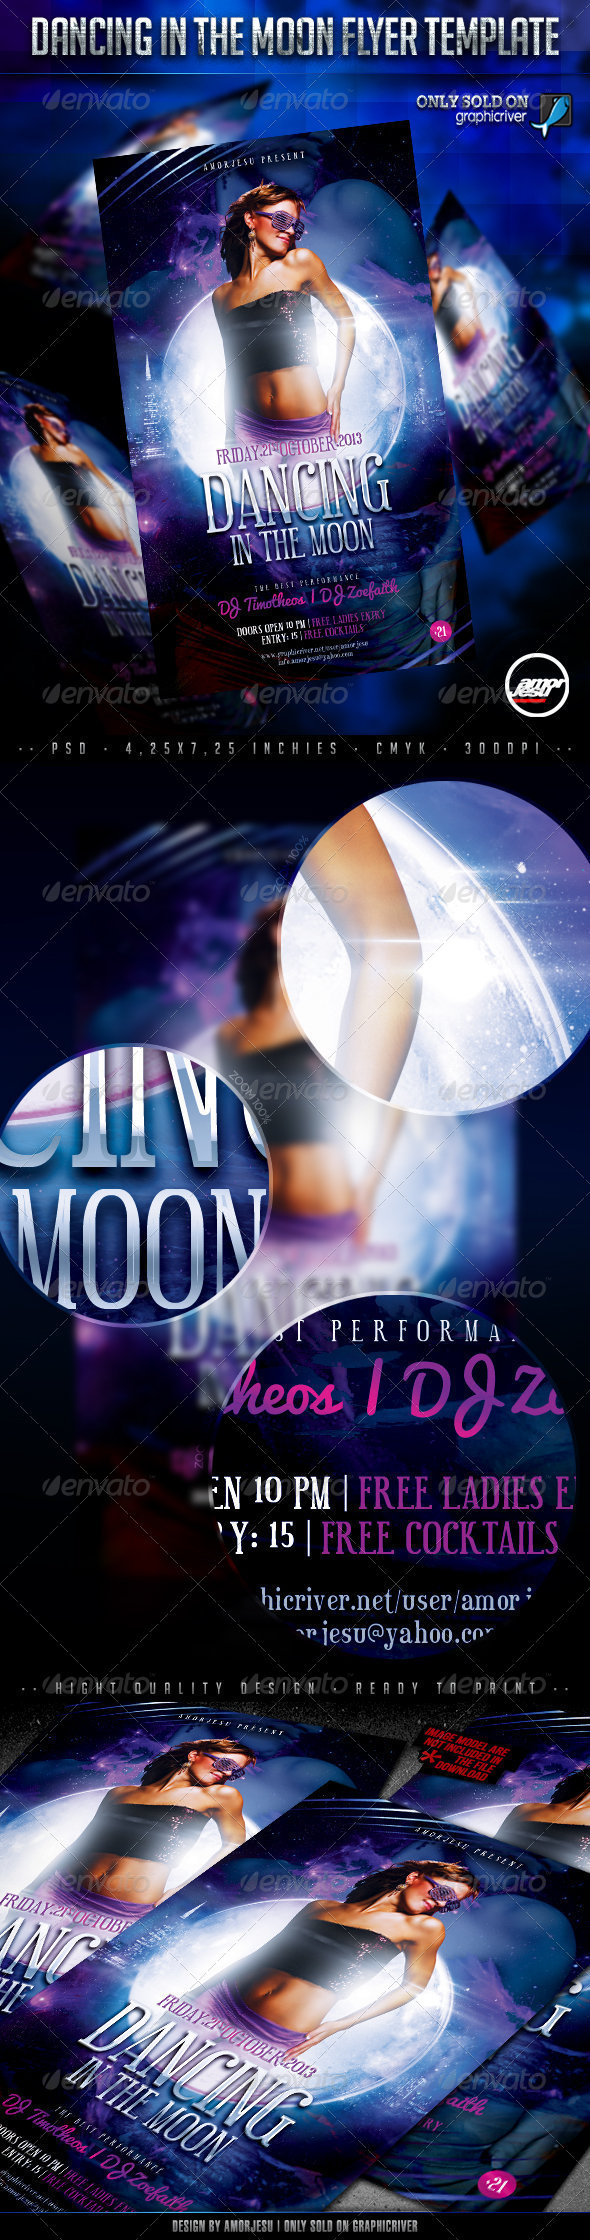 Dancing In The Moon Flyer Template - Clubs & Parties Events